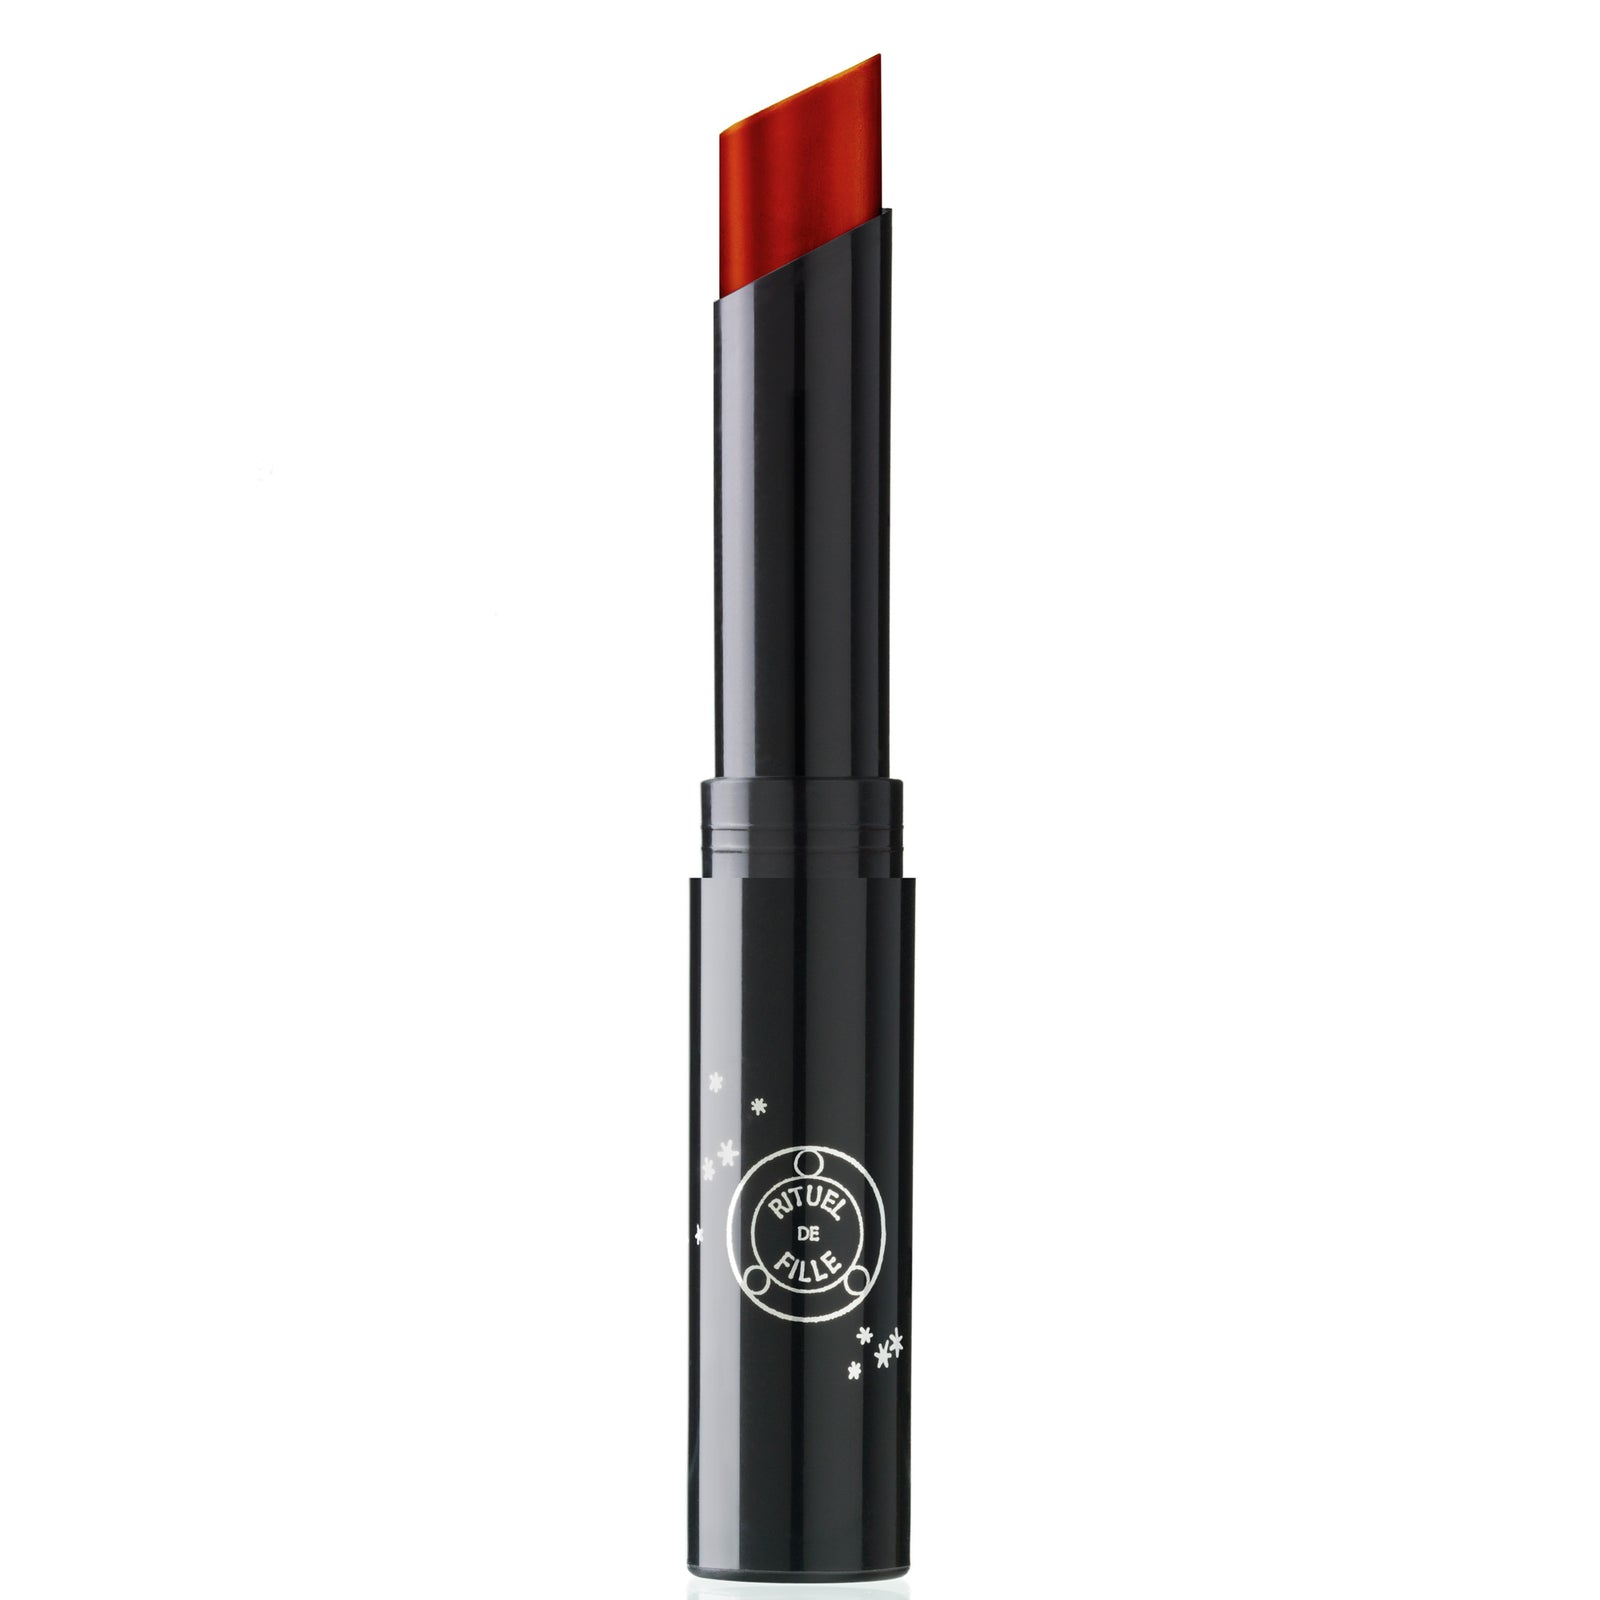 Devil's Claw red natural lipstick cruelty free makeup packaging